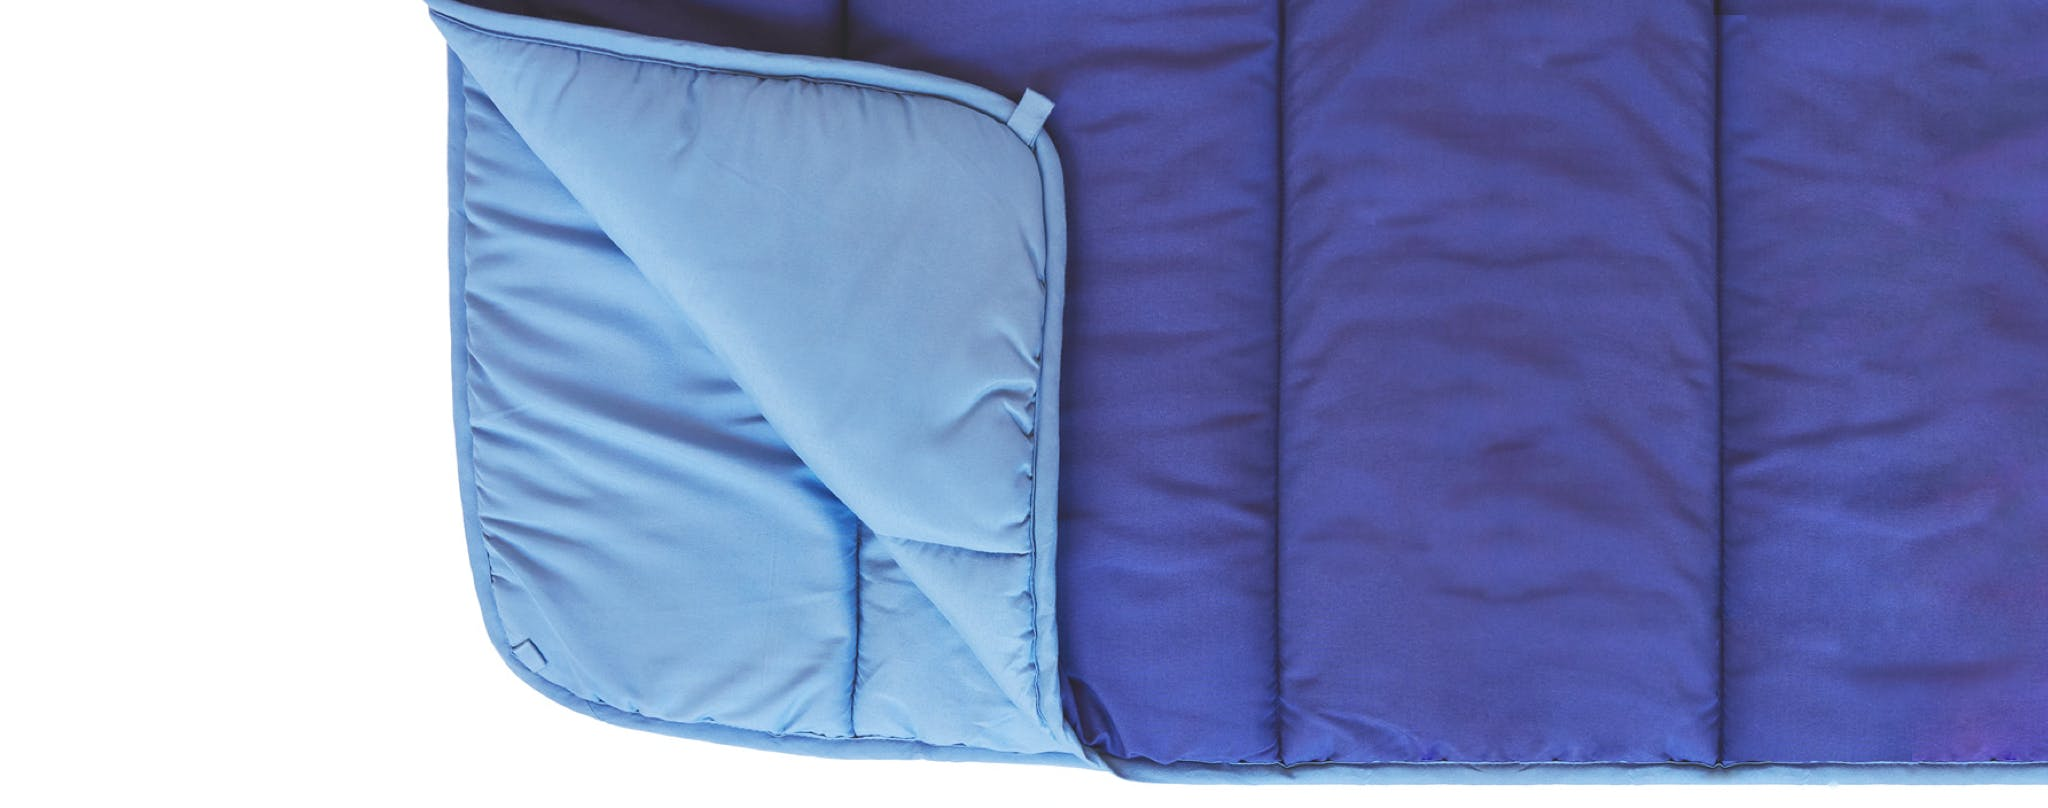 blue comforter folded with corner peeled down